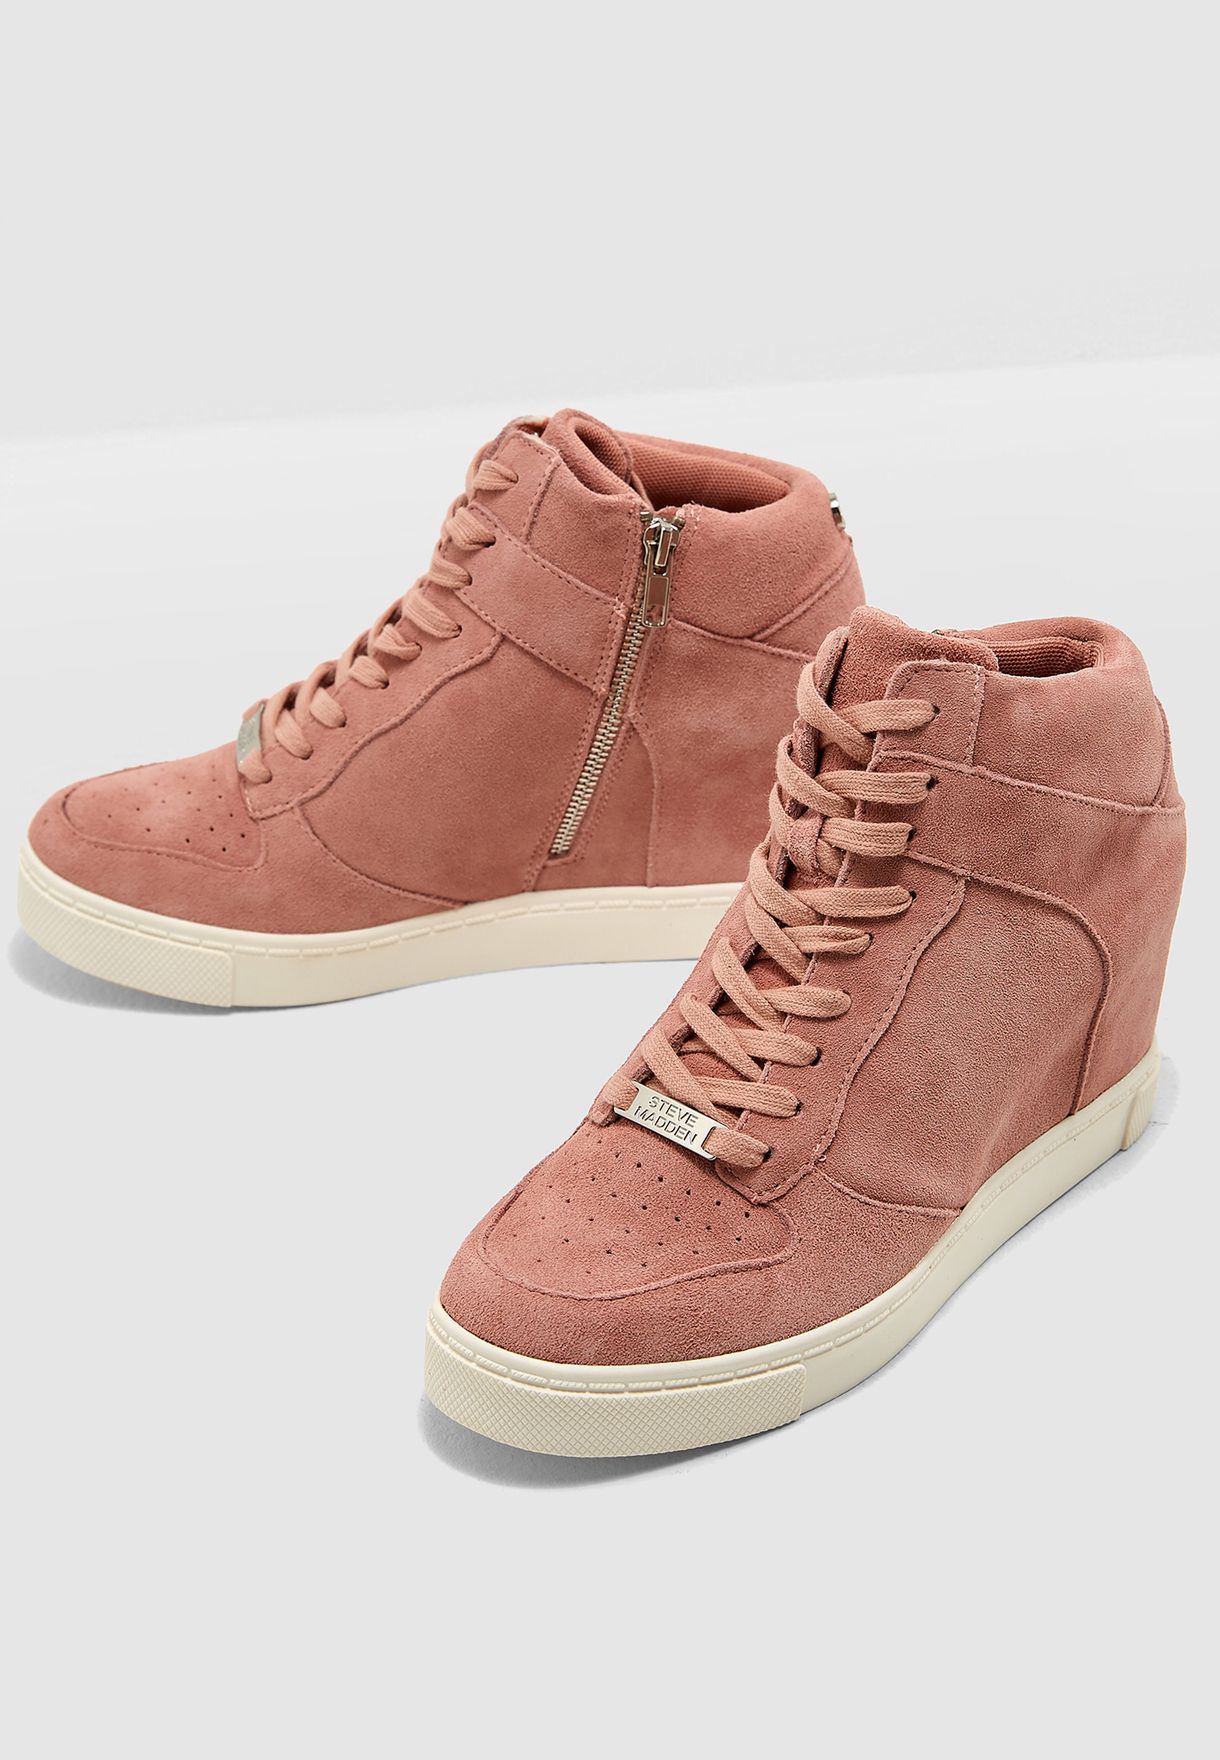 c3f6b47cea3 Shop Steve Madden pink Noah High Top Sneaker NOAH for Women in UAE ...